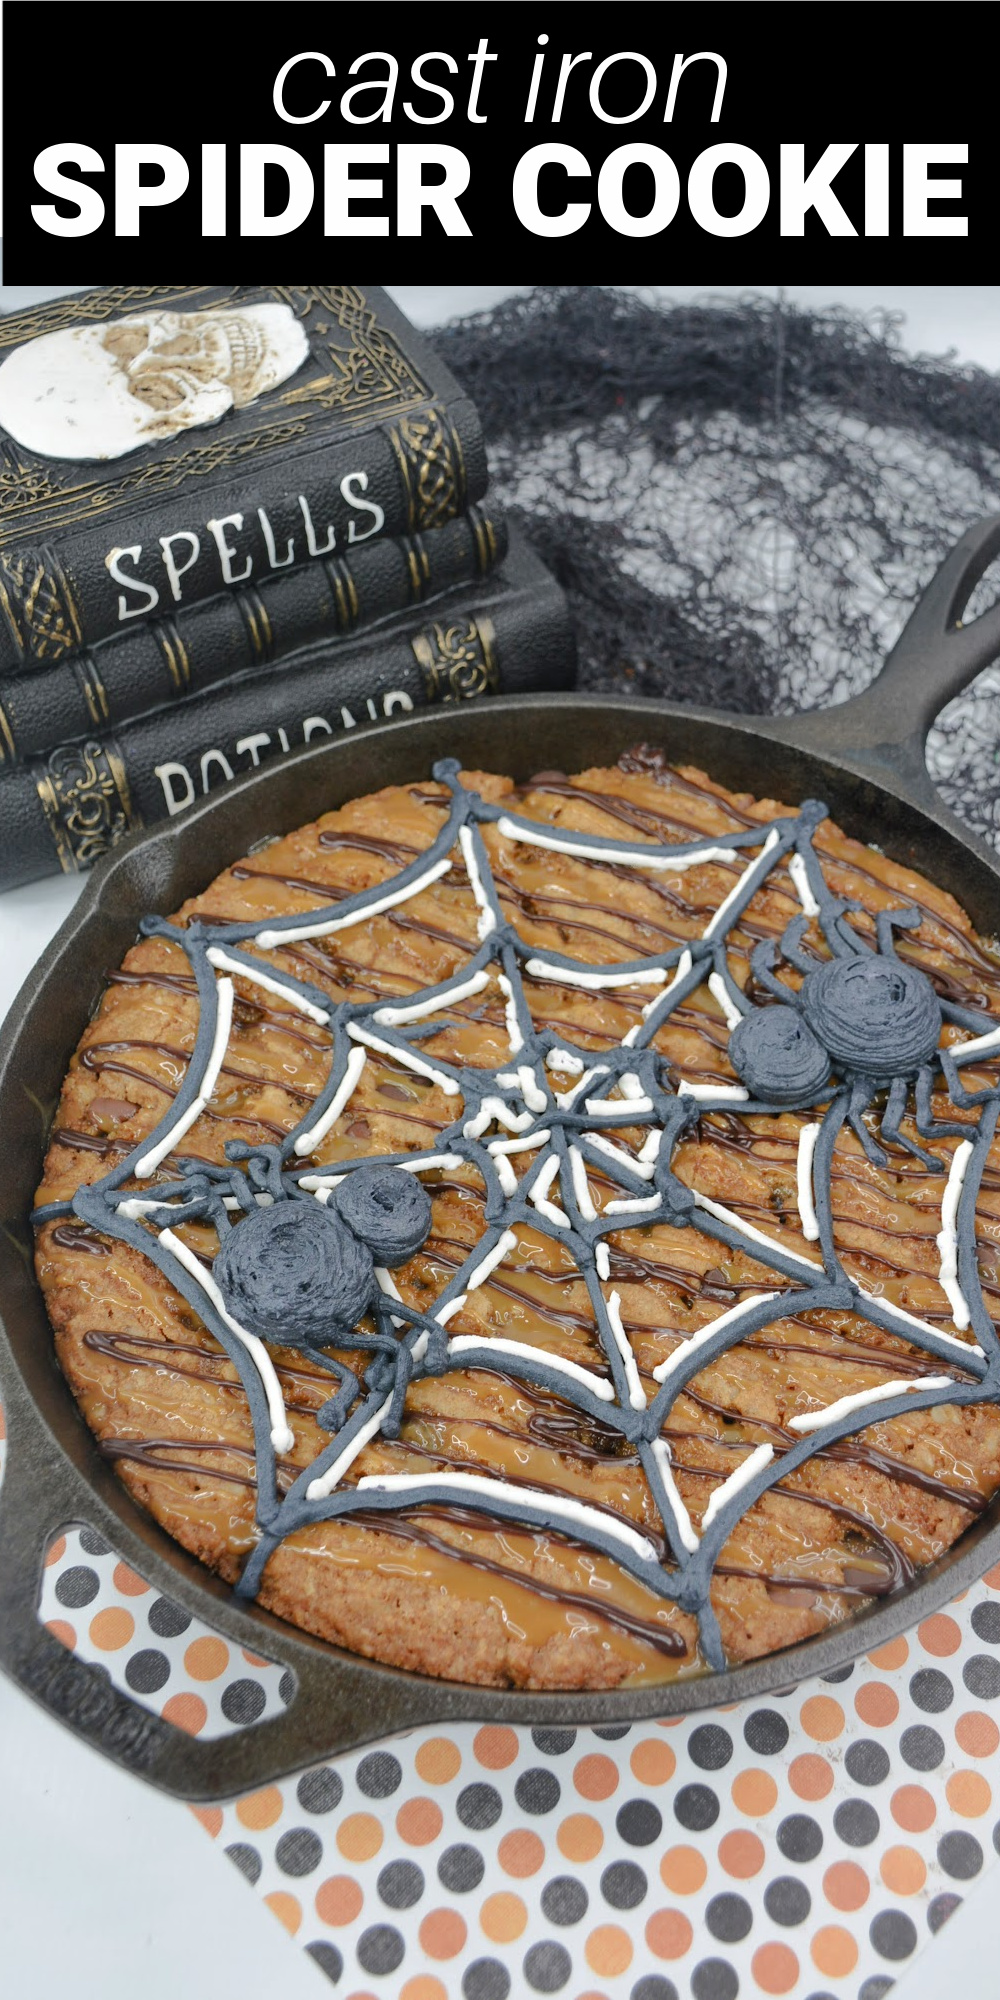 This big spider web cookie is a sweet chocolate chip oatmeal cookie with caramel and chocolate sauces drizzled on top and a cute buttercream spider. It's a fun Halloween treat.